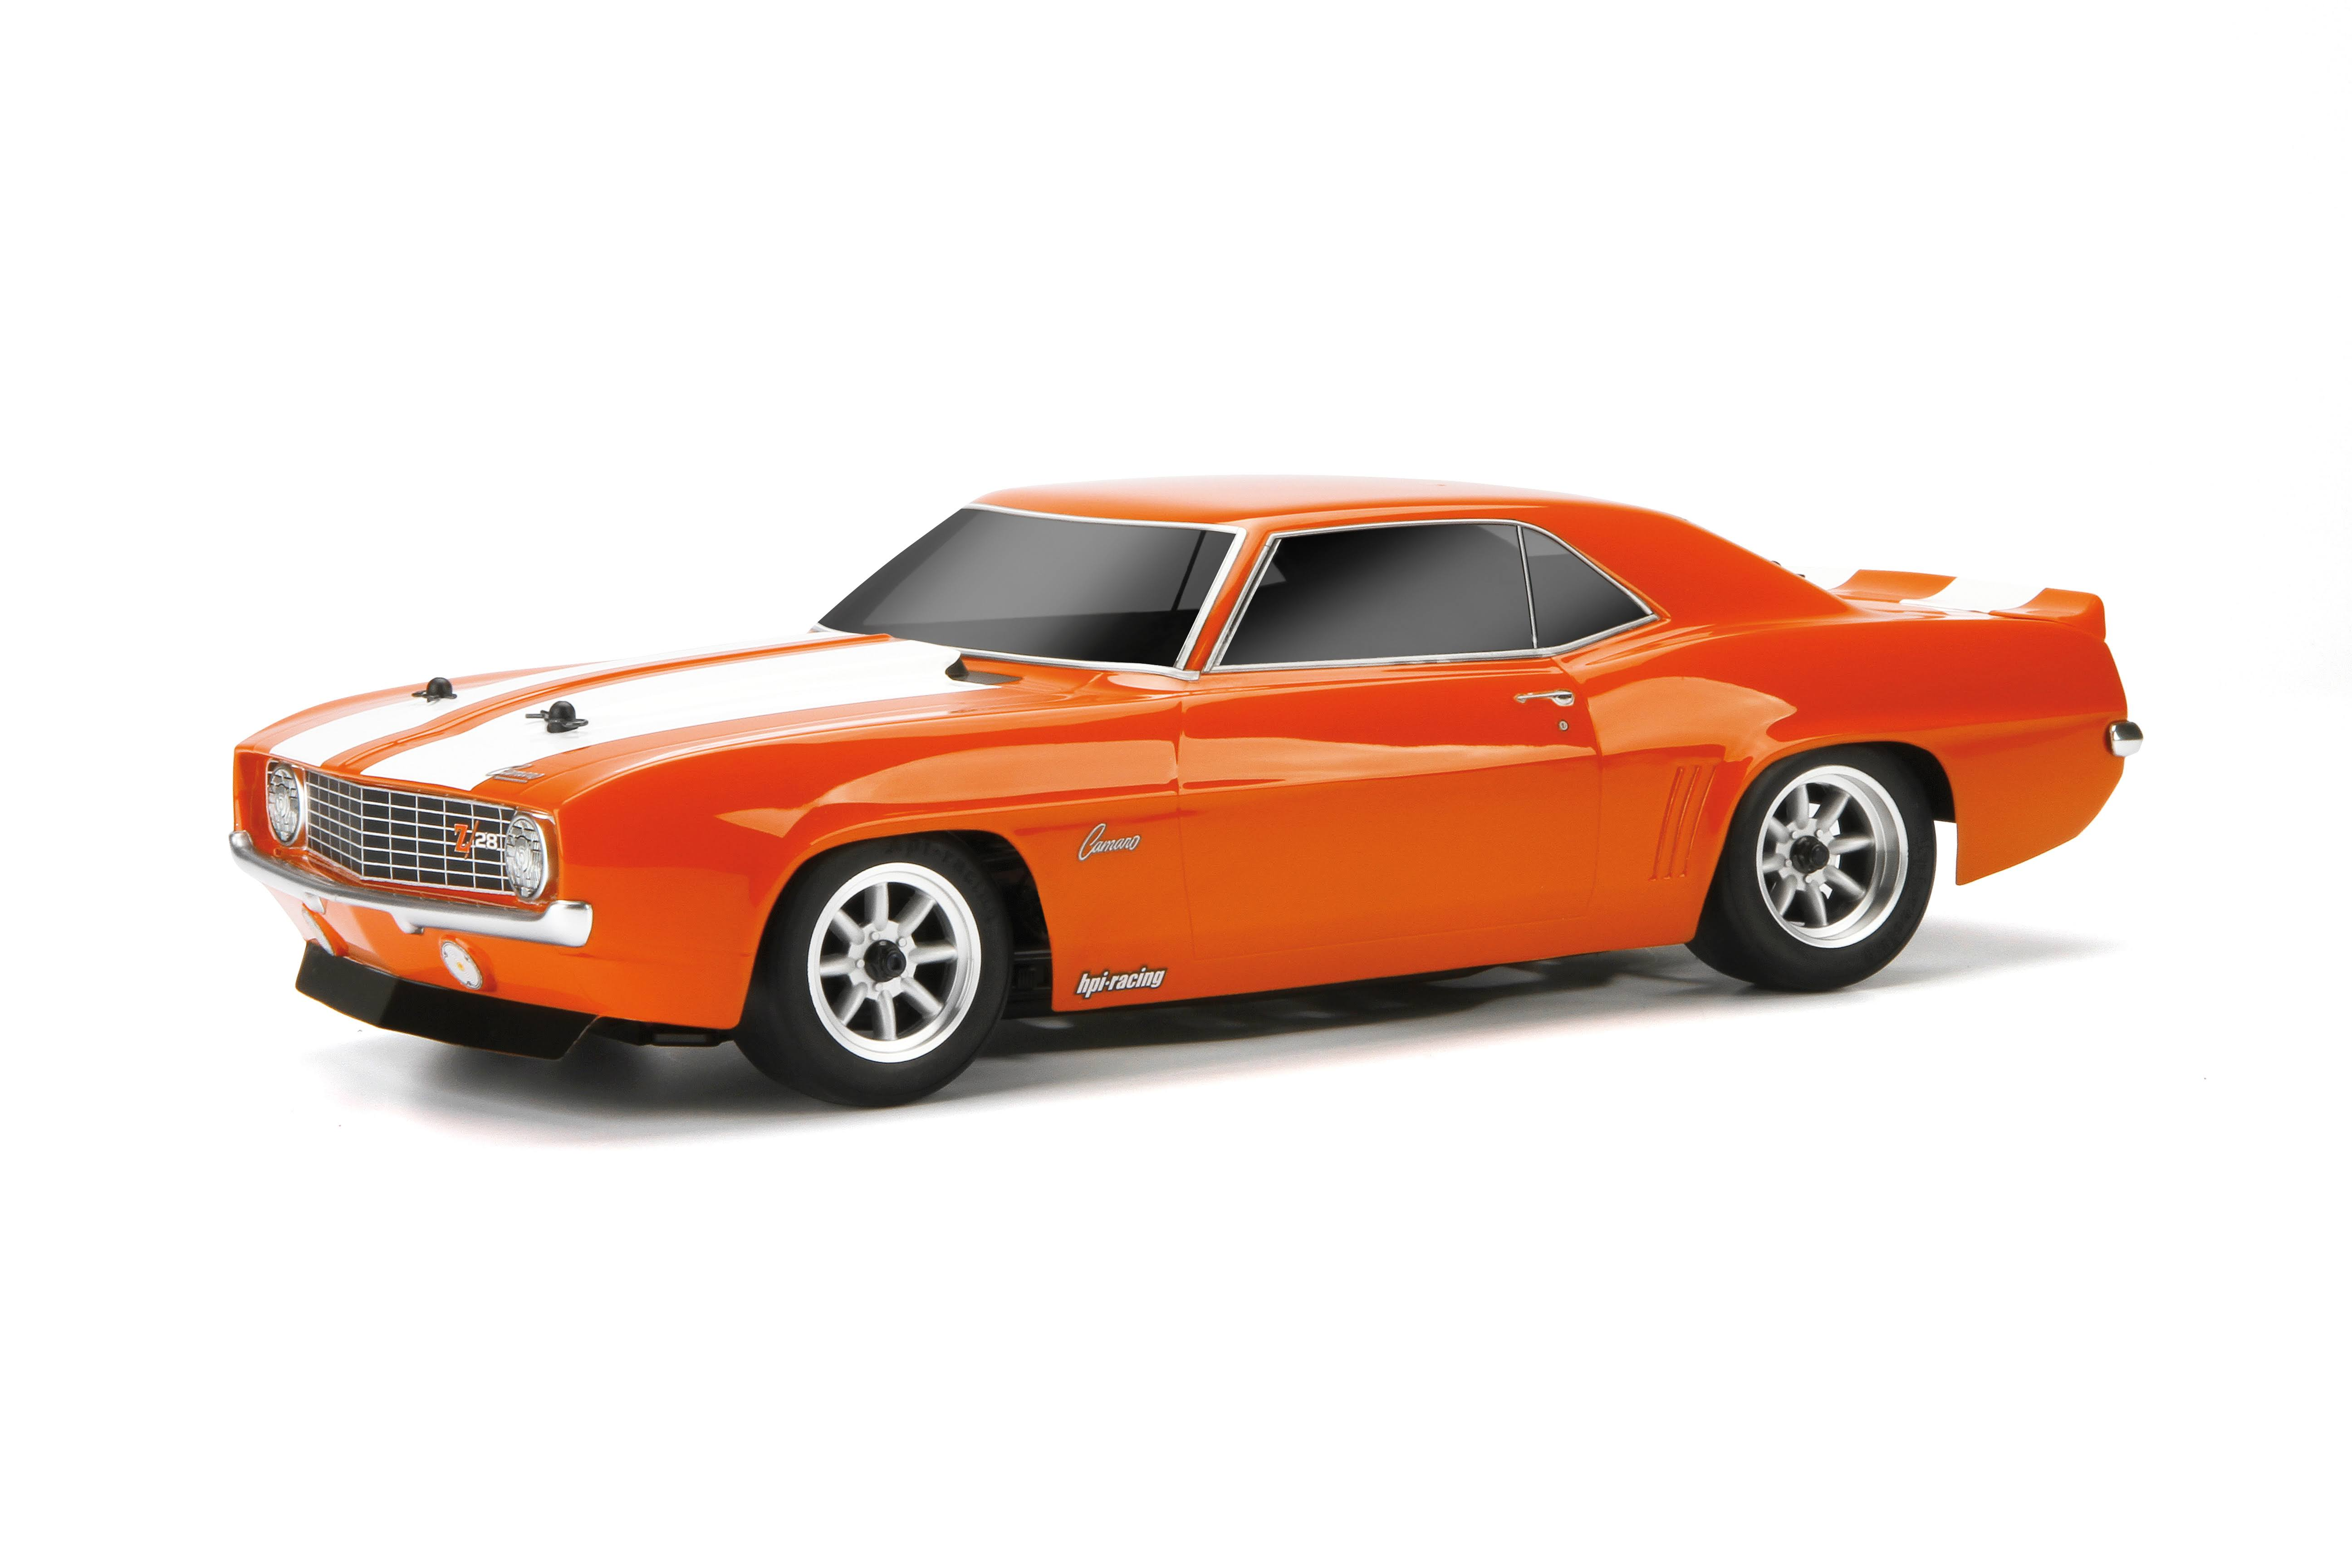 HPI 17531 Racing '69 Chevrolet Camaro Z28 Clear Body, 200mm